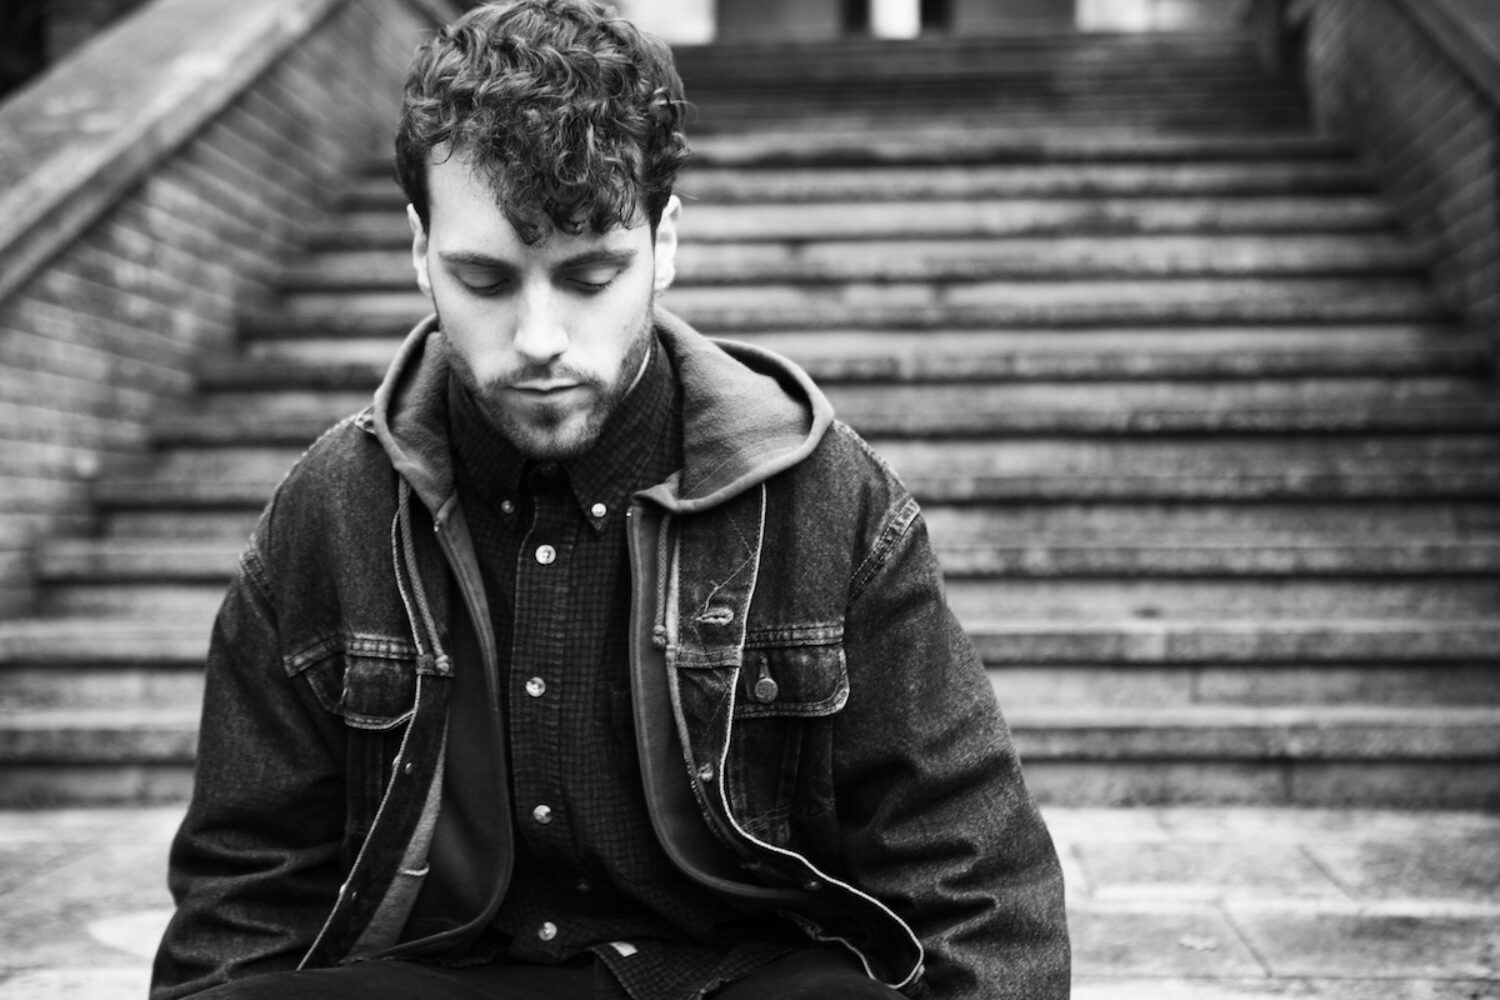 The Acid's Nalepa and William Arcane collaborate on 'Feel' track